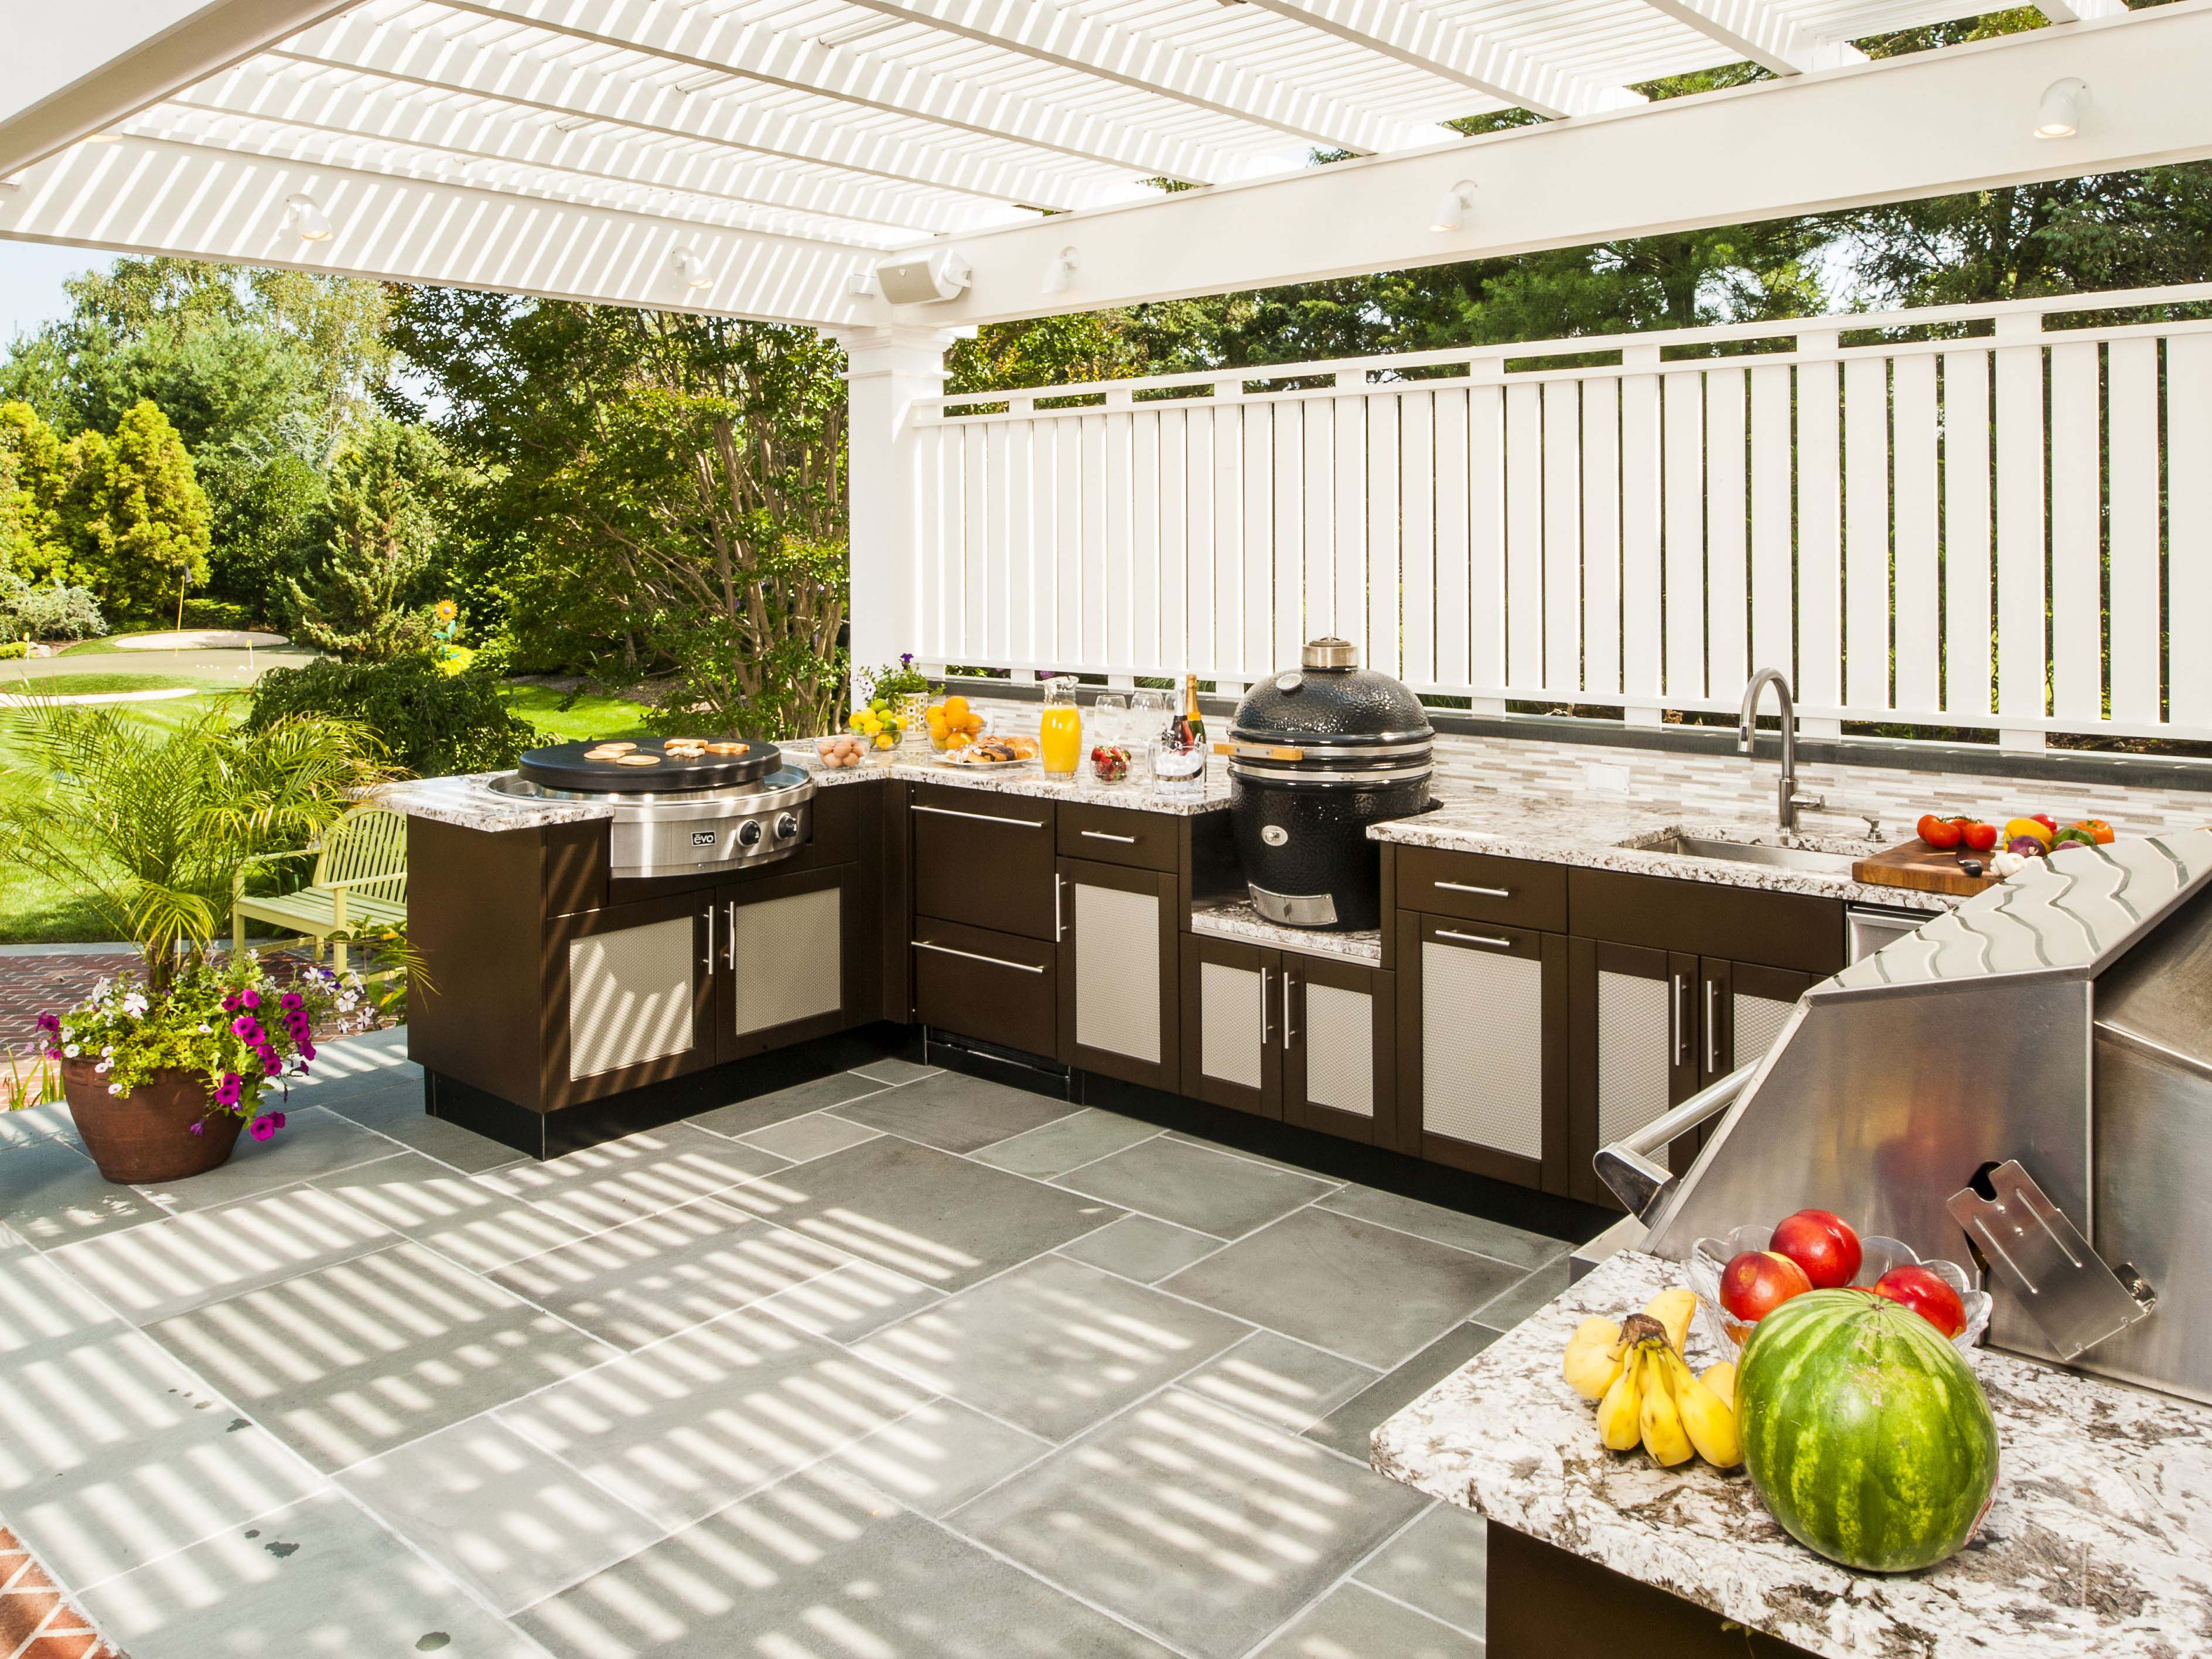 The interiors flow seamlessly into the outdoor area with this sunny creation by Brown Jordan Outdoor Kitchens in Long Island, New York.